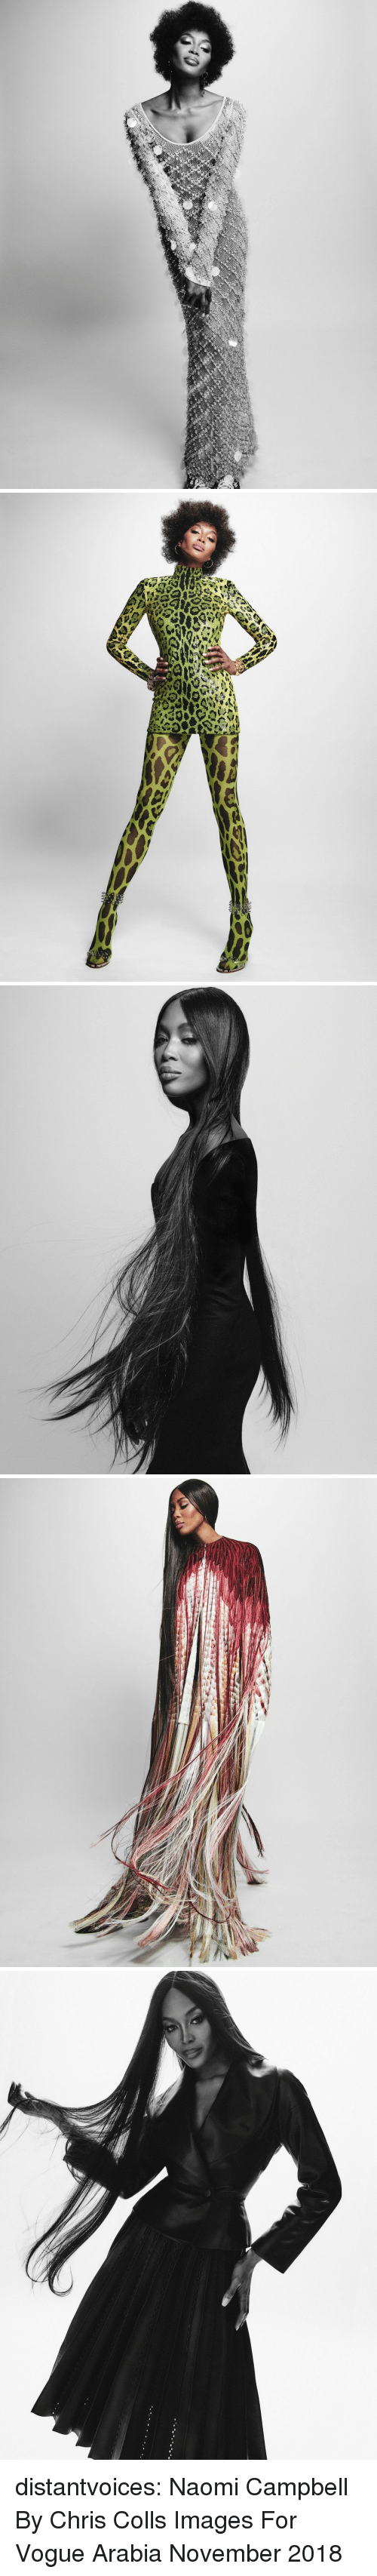 vogue: distantvoices:  Naomi Campbell By Chris Colls Images For Vogue Arabia November 2018